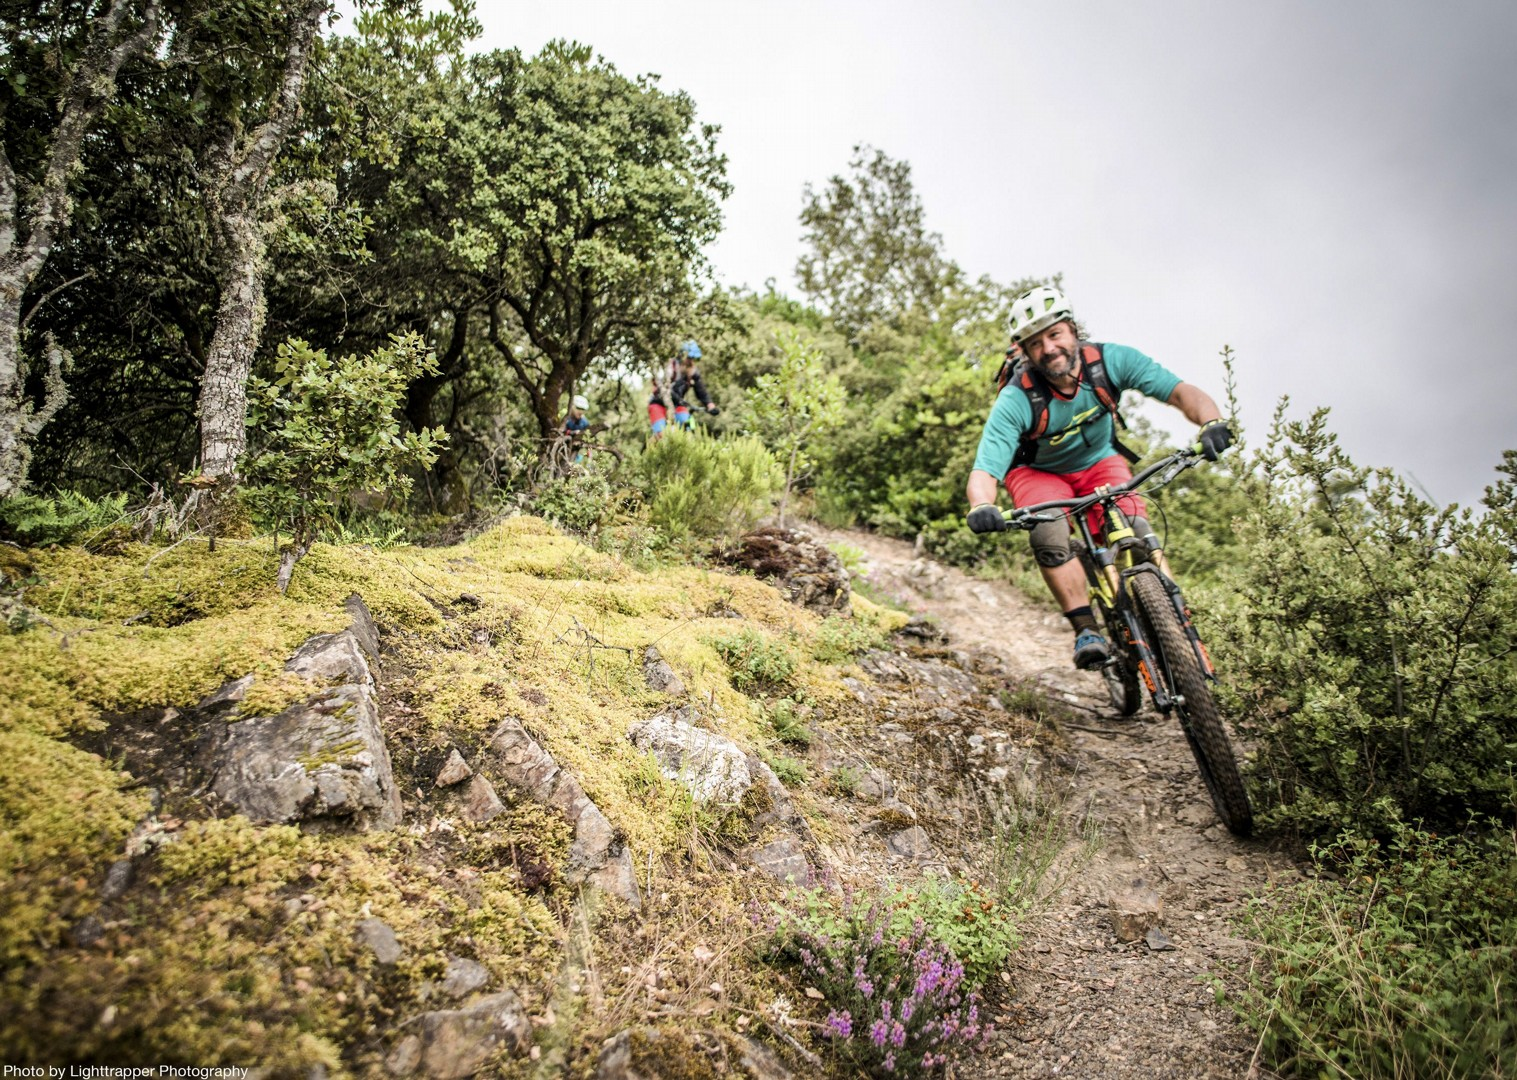 technical-singletrack-terrain-mtb-mountain-biking-cycling-northern-spain-picos-de-europa.jpg - Spain - Picos de Europa - Trans Picos - Guided Mountain Bike Holiday - Mountain Biking